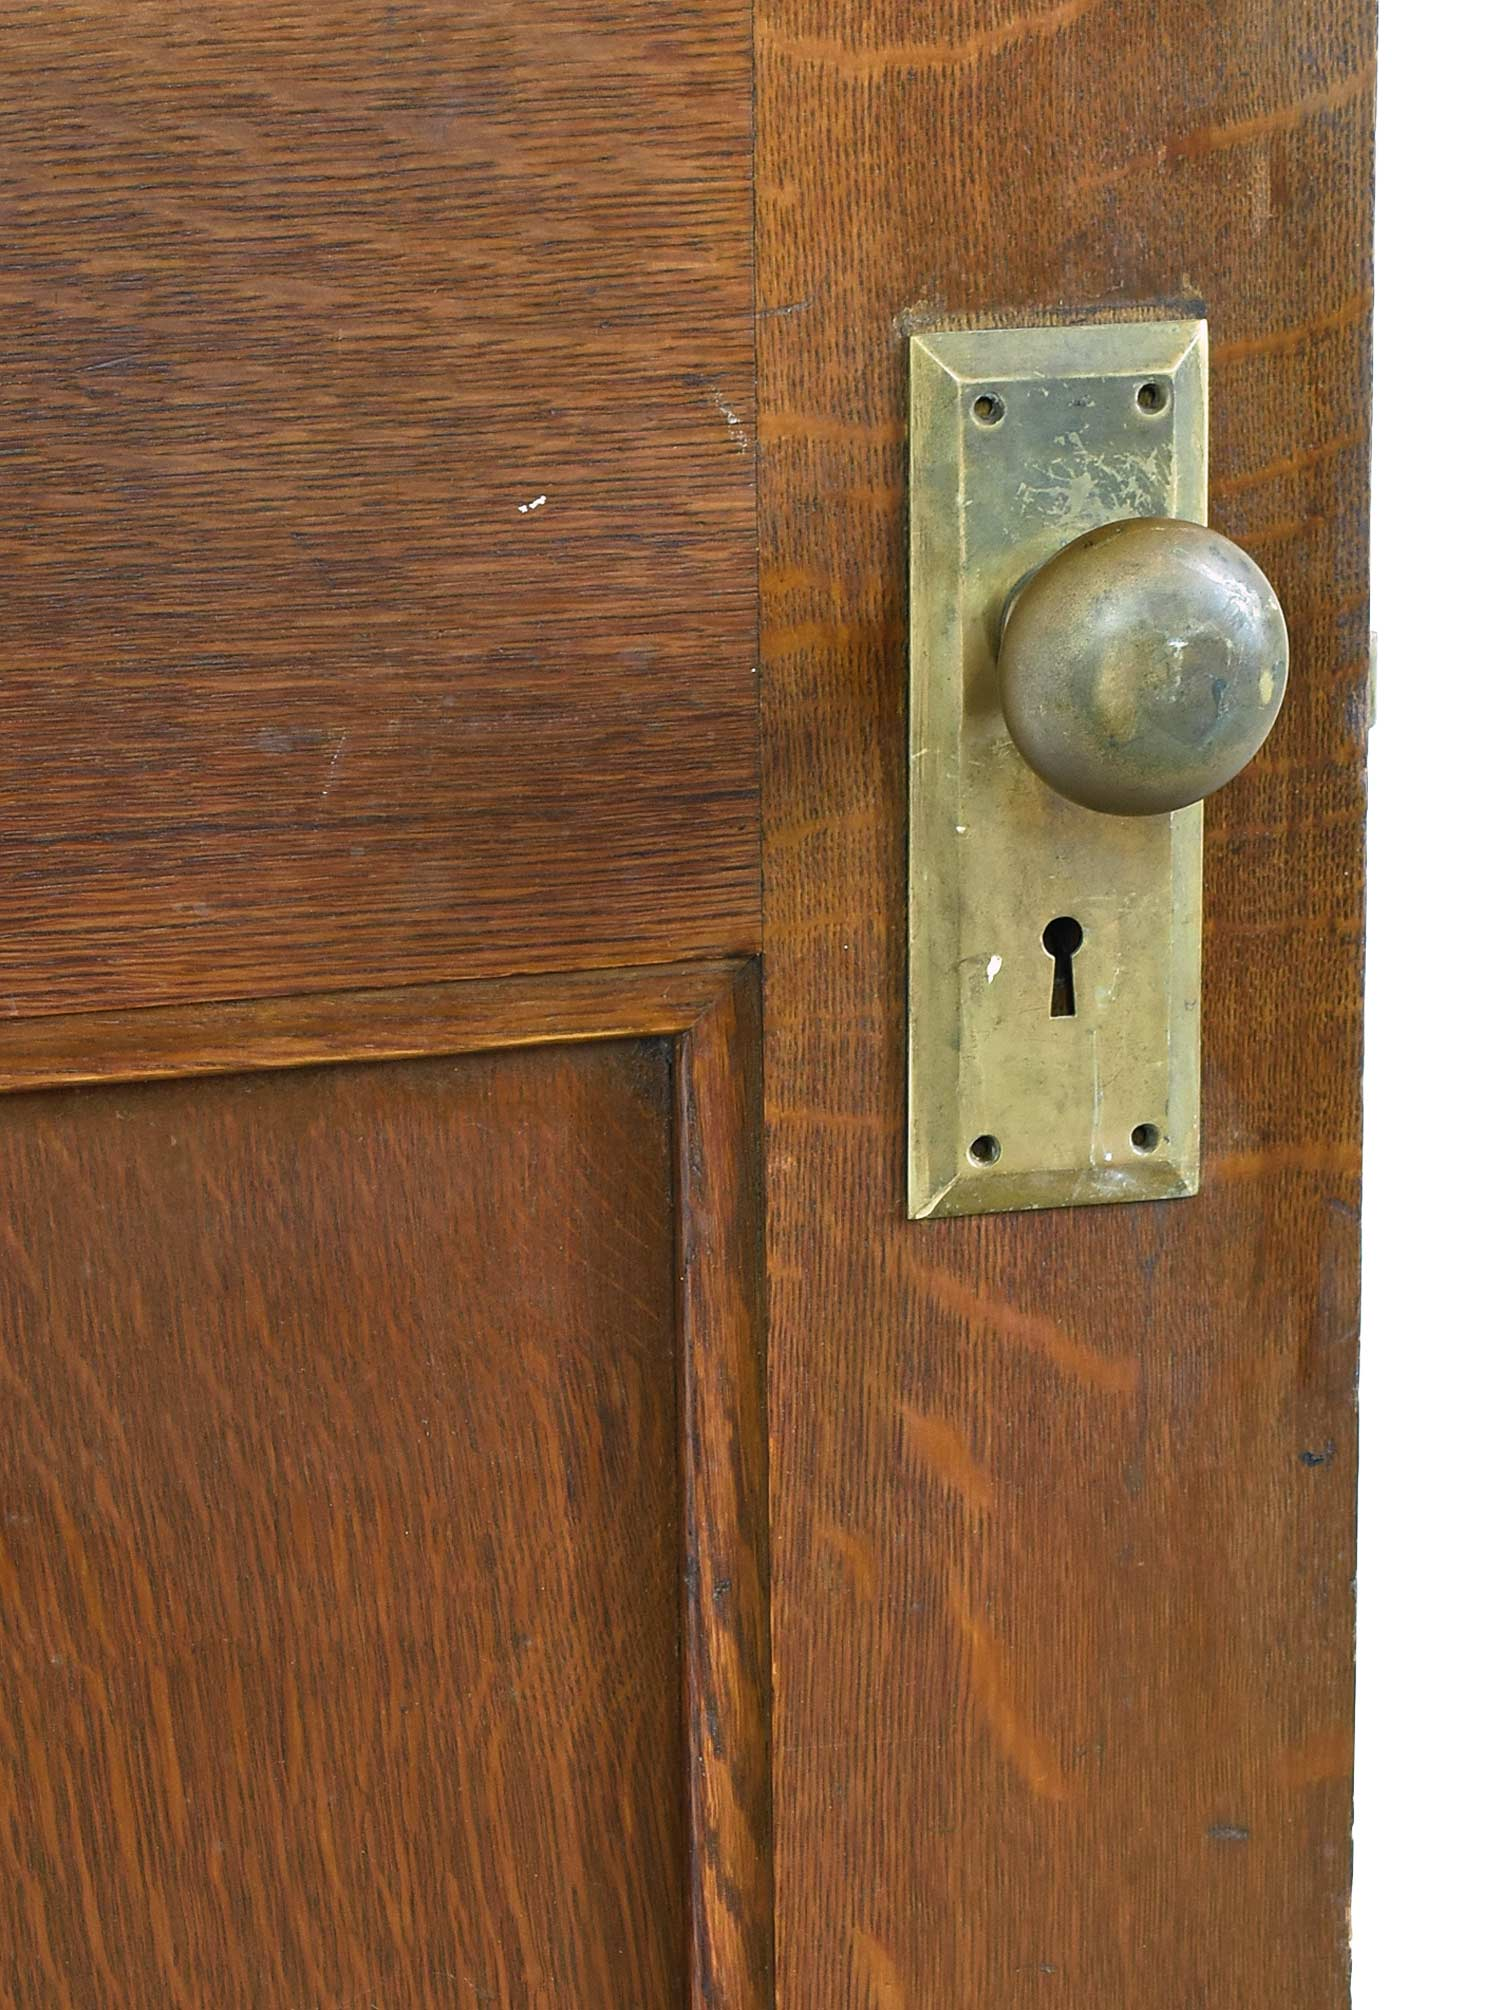 46159-wide-quartersawn-half-view-oak-door-knob.jpg